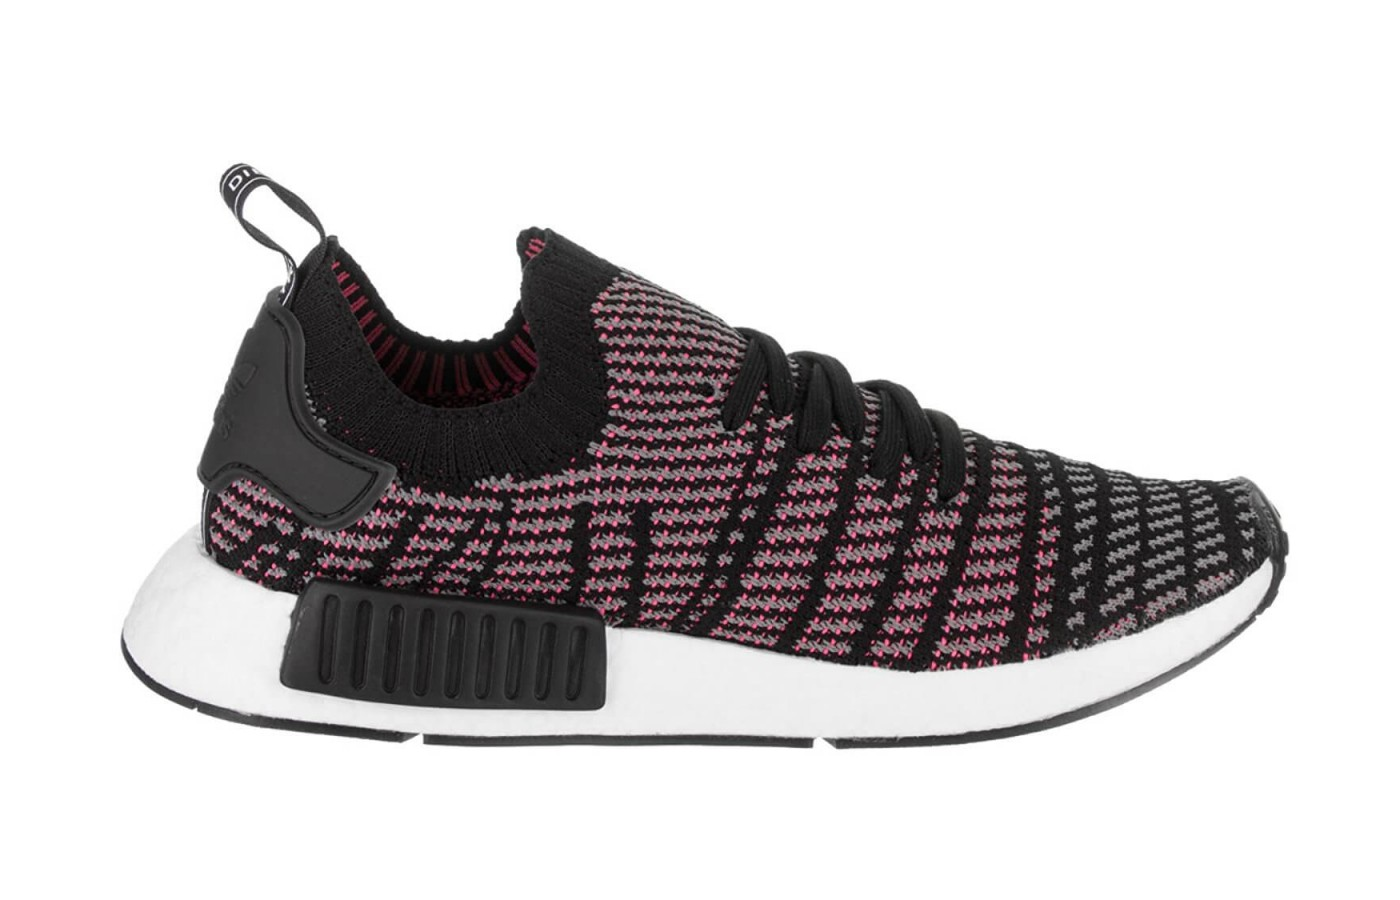 94bf6e676ac4 ... The Adidas NMD R1 Stlt Primeknit features a Boost midsole ...